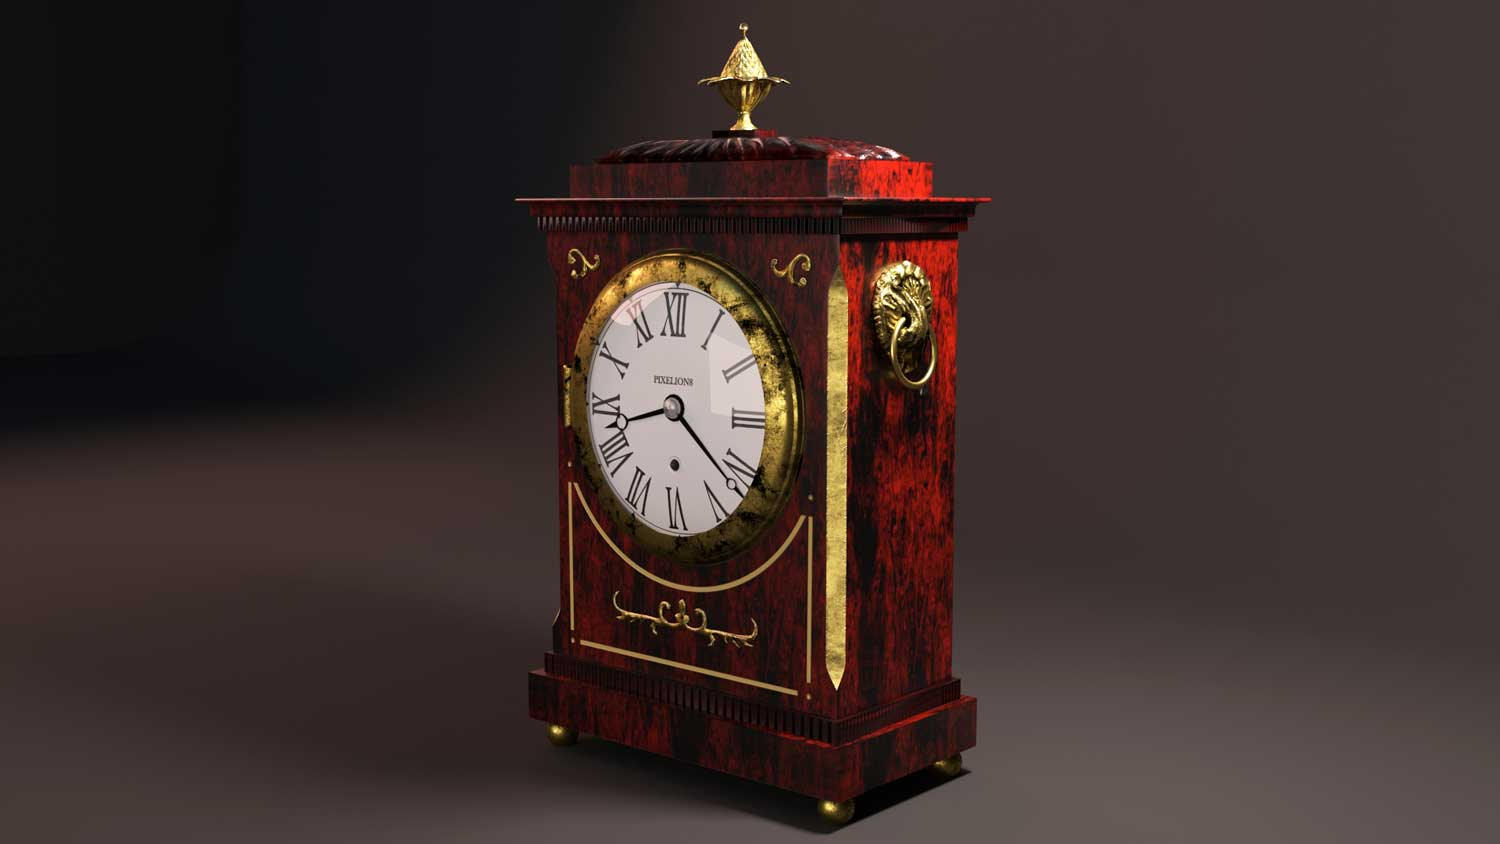 wood-red-vray-side-profil-horloge-clock-comptoise-pixelion8